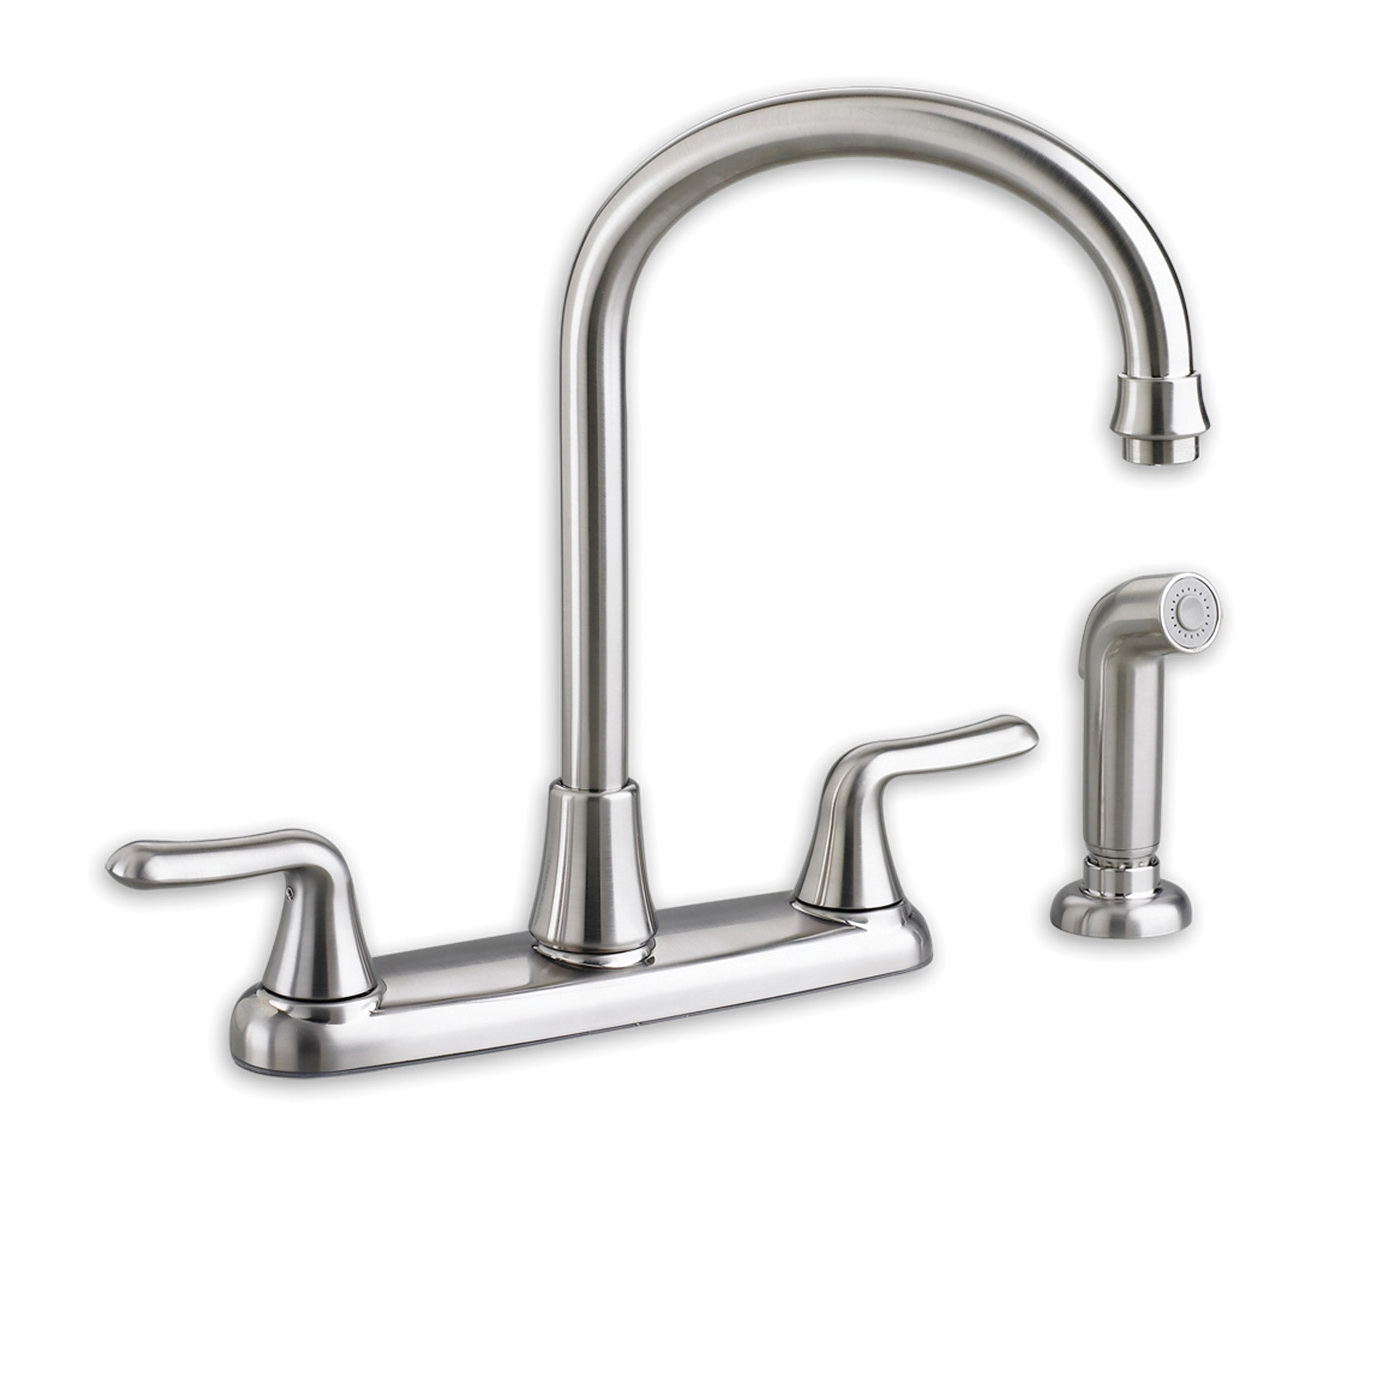 American Standard 4275.551.002 Colony® Soft Kitchen Faucet With Separate Color-Matched Handspray, 2.2 gpm, 4 Faucet Holes, 2 Handles, Polished Chrome, Import